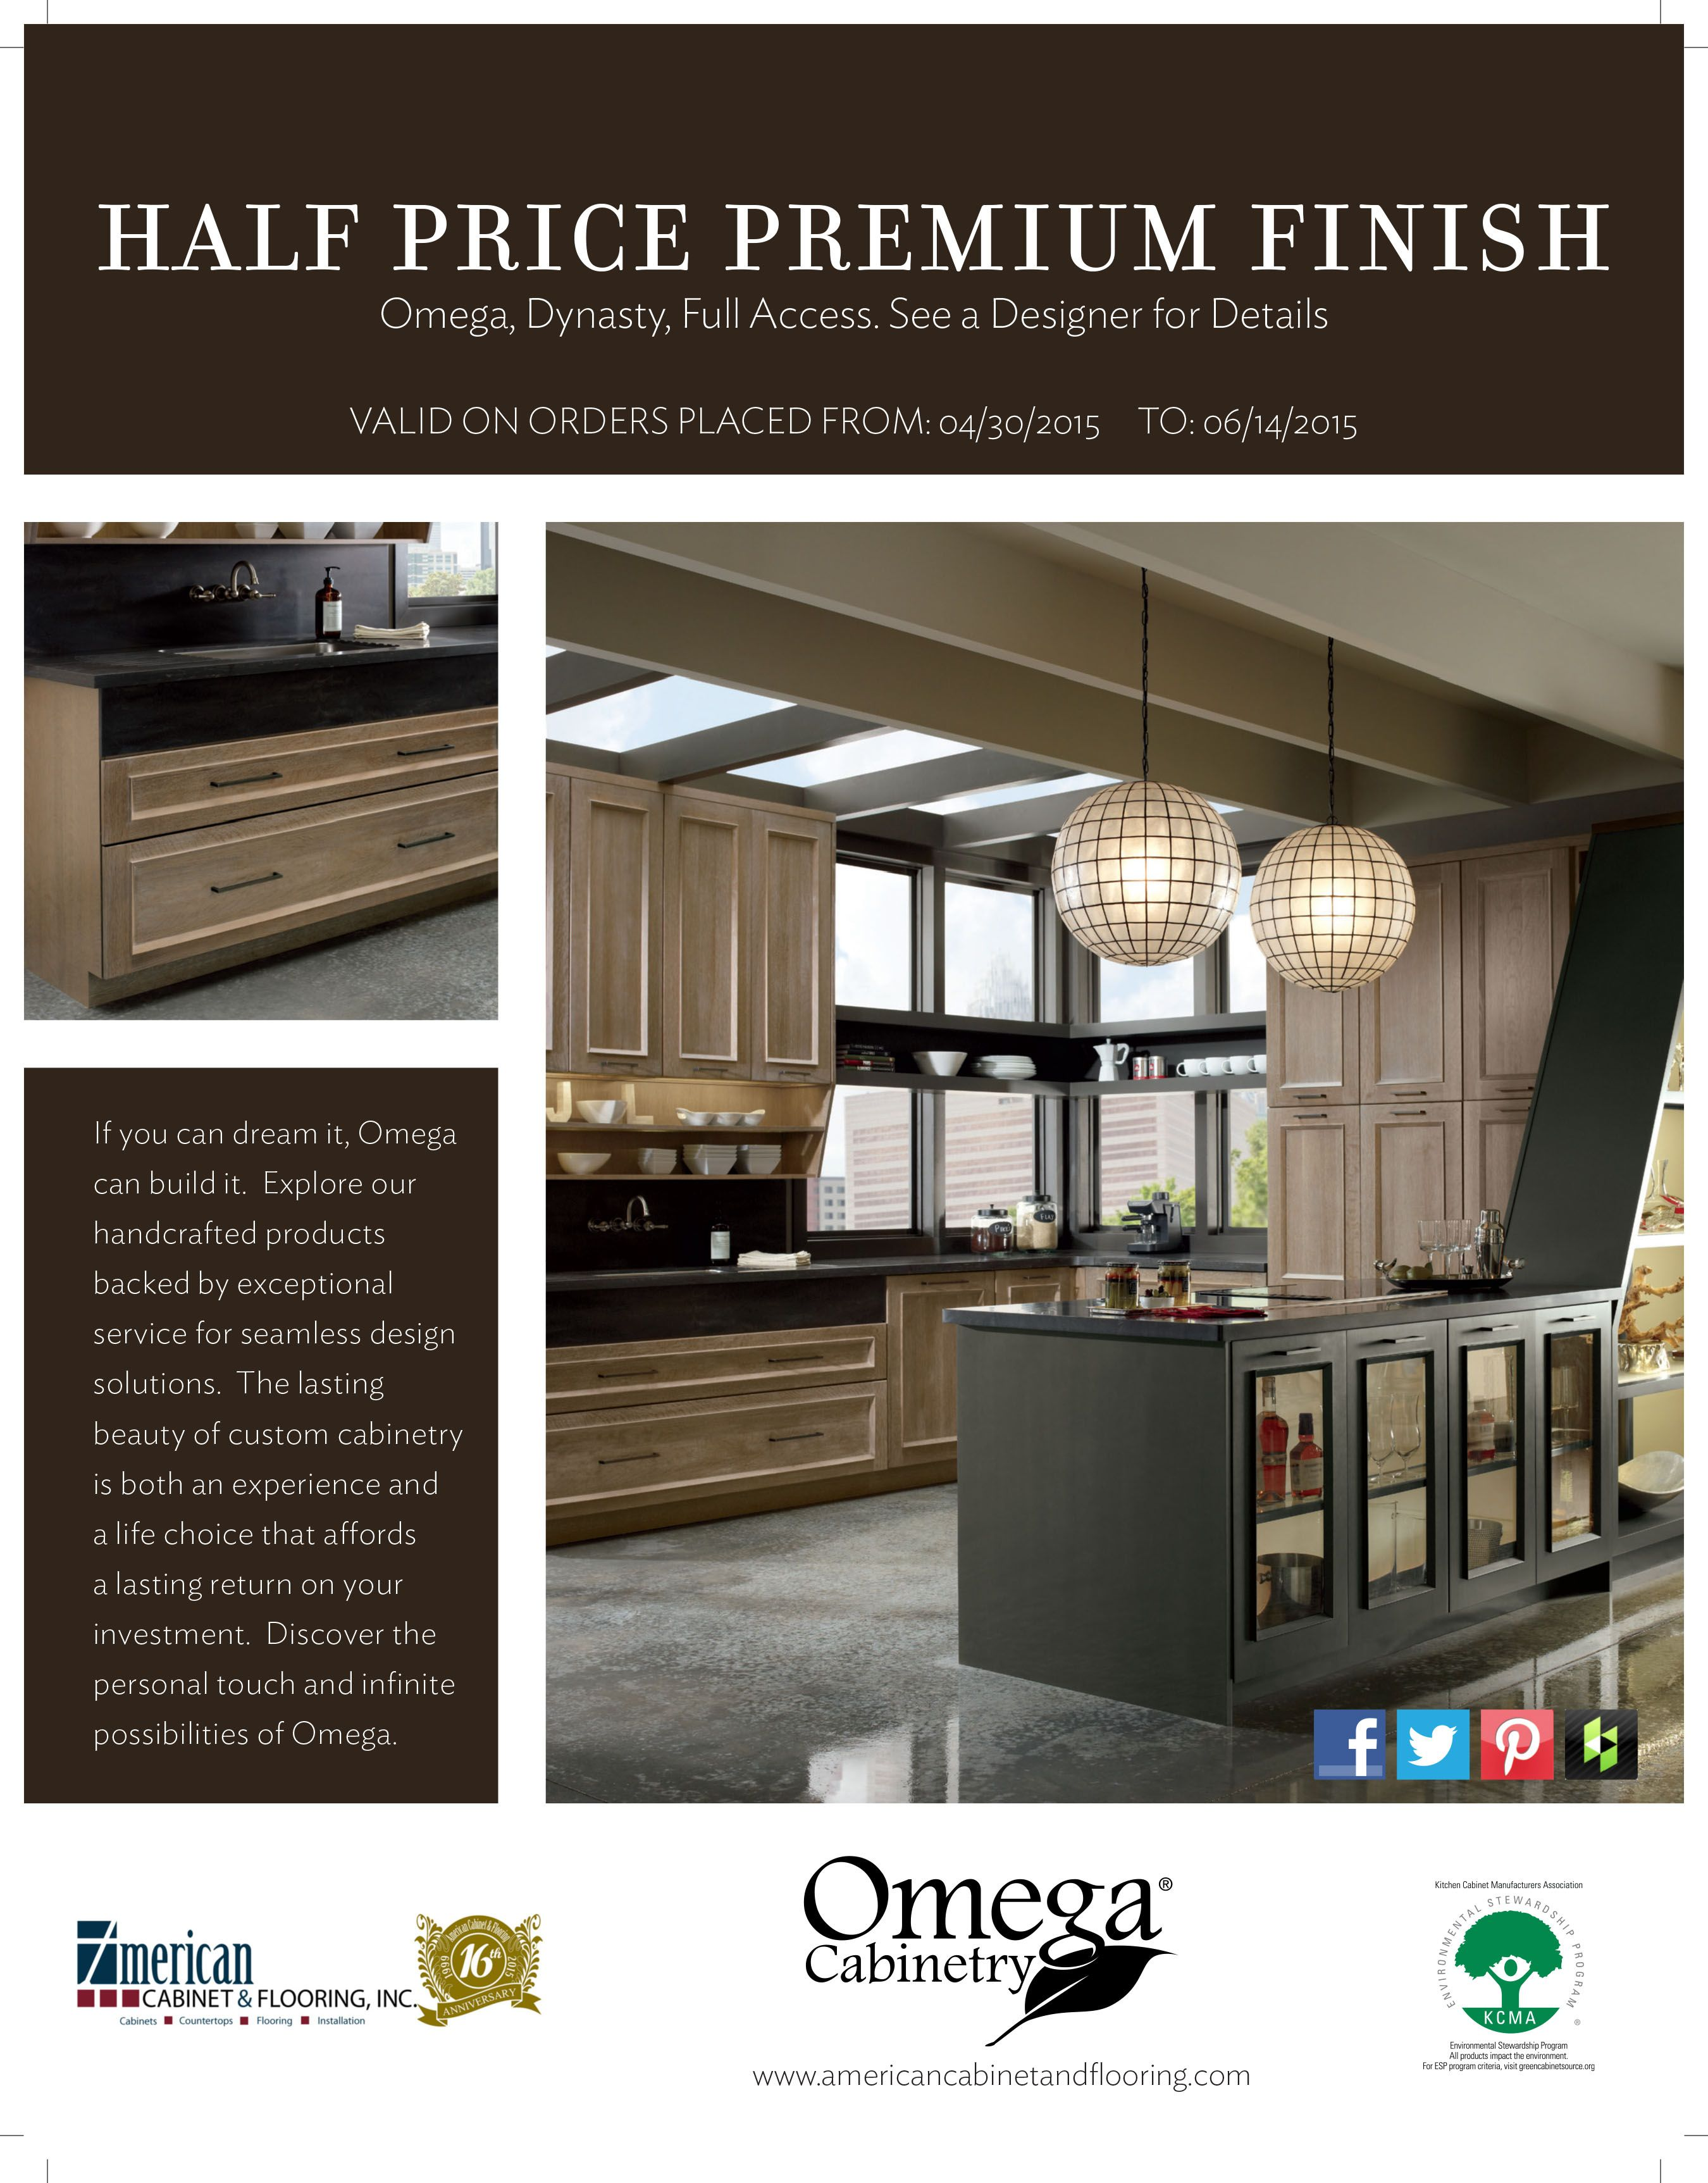 Save BIG on Omega this Spring! Call today! (303) 9966026